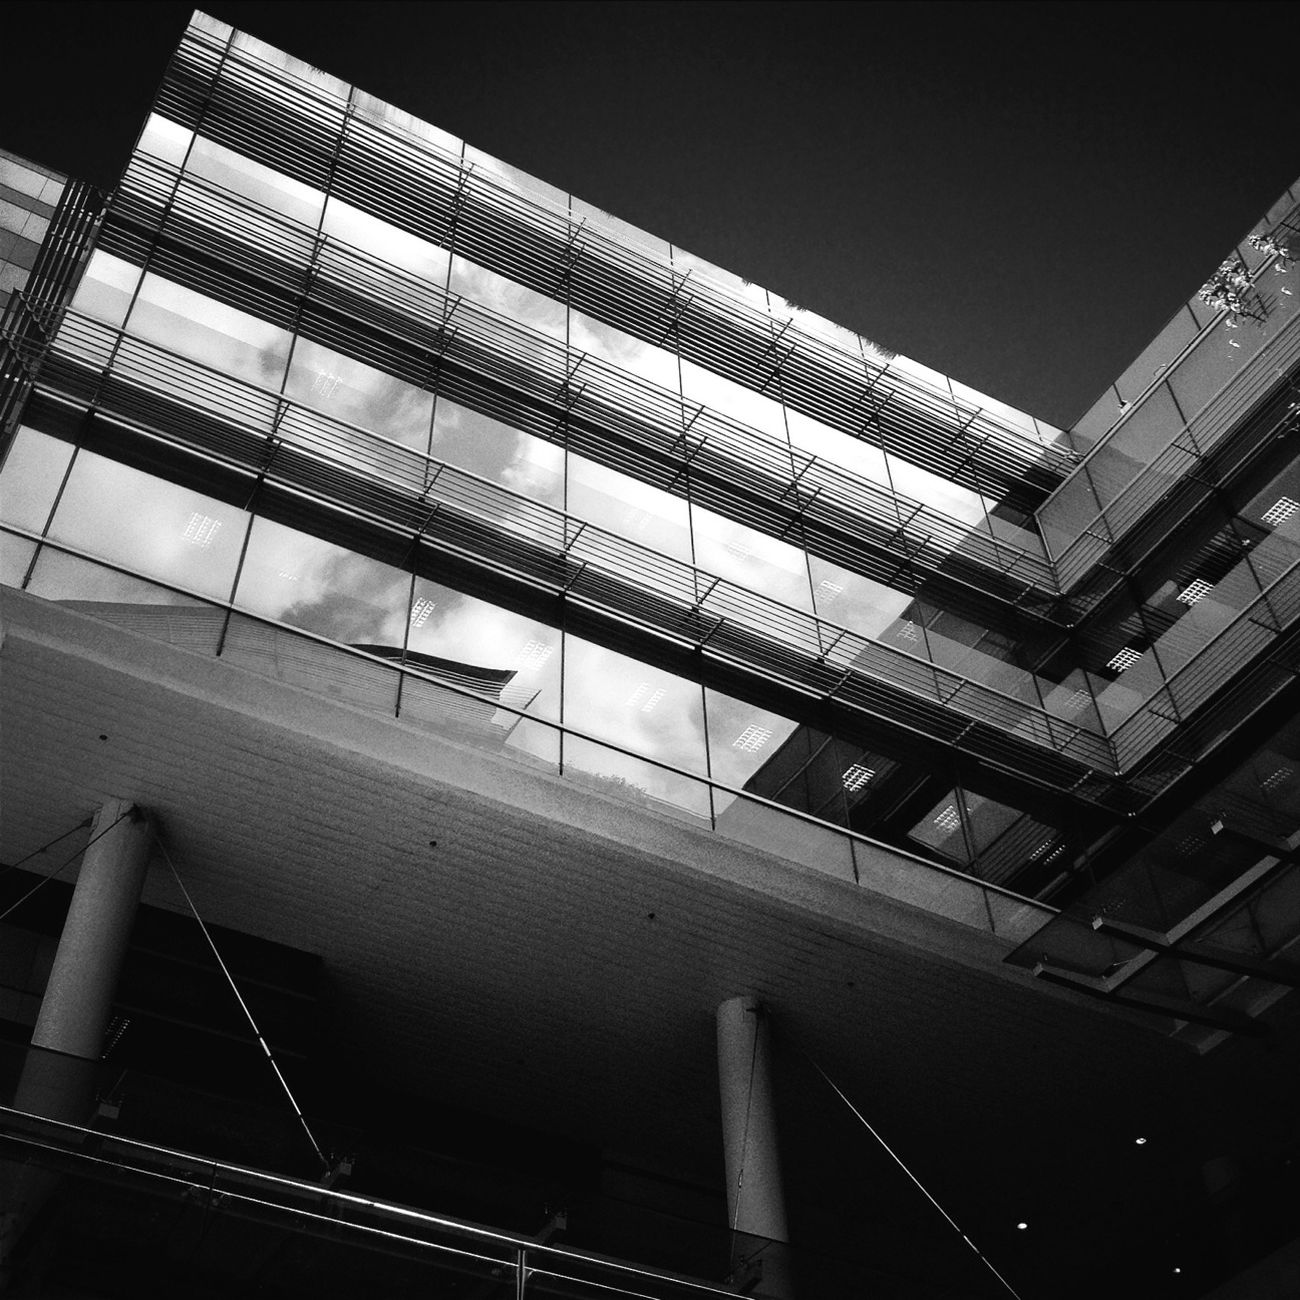 r • e • f • l • e • c • t • i • o • n Architecture Light Eye4photography  Bw_collection